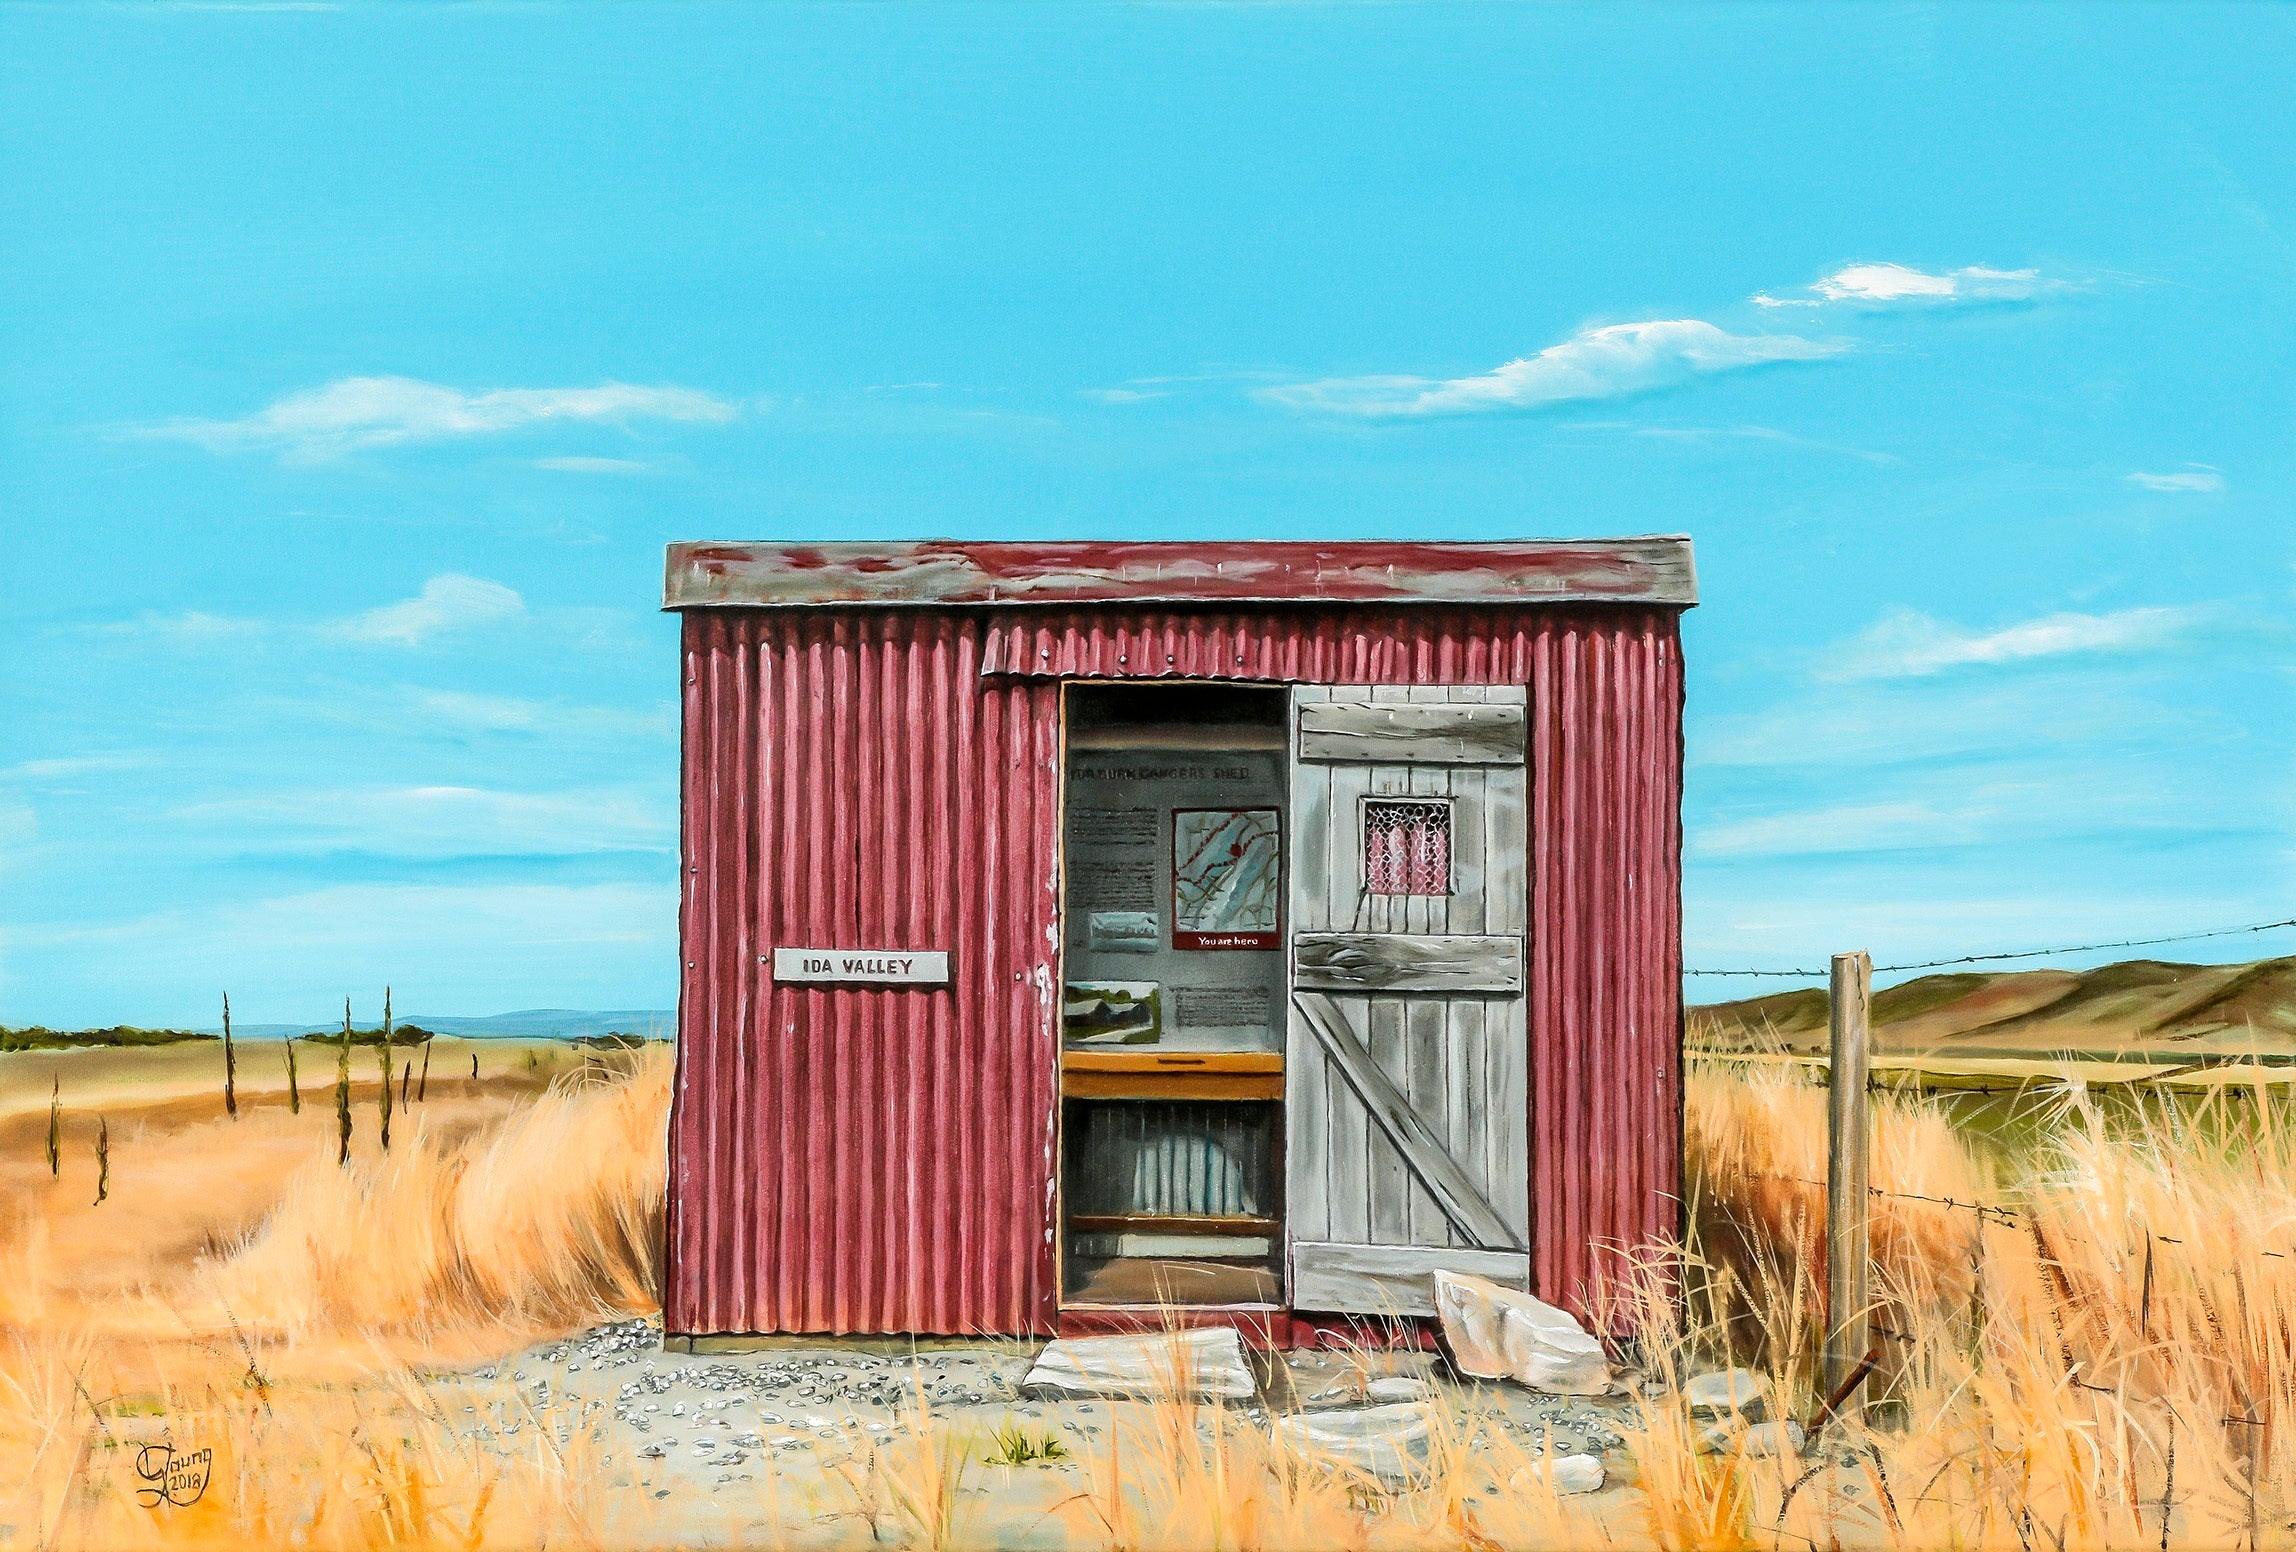 Ida Valley Gangers Shed Prints - grahamyoungartist.com - Original Artwork and Prints by New Zealand Artist Graham Young